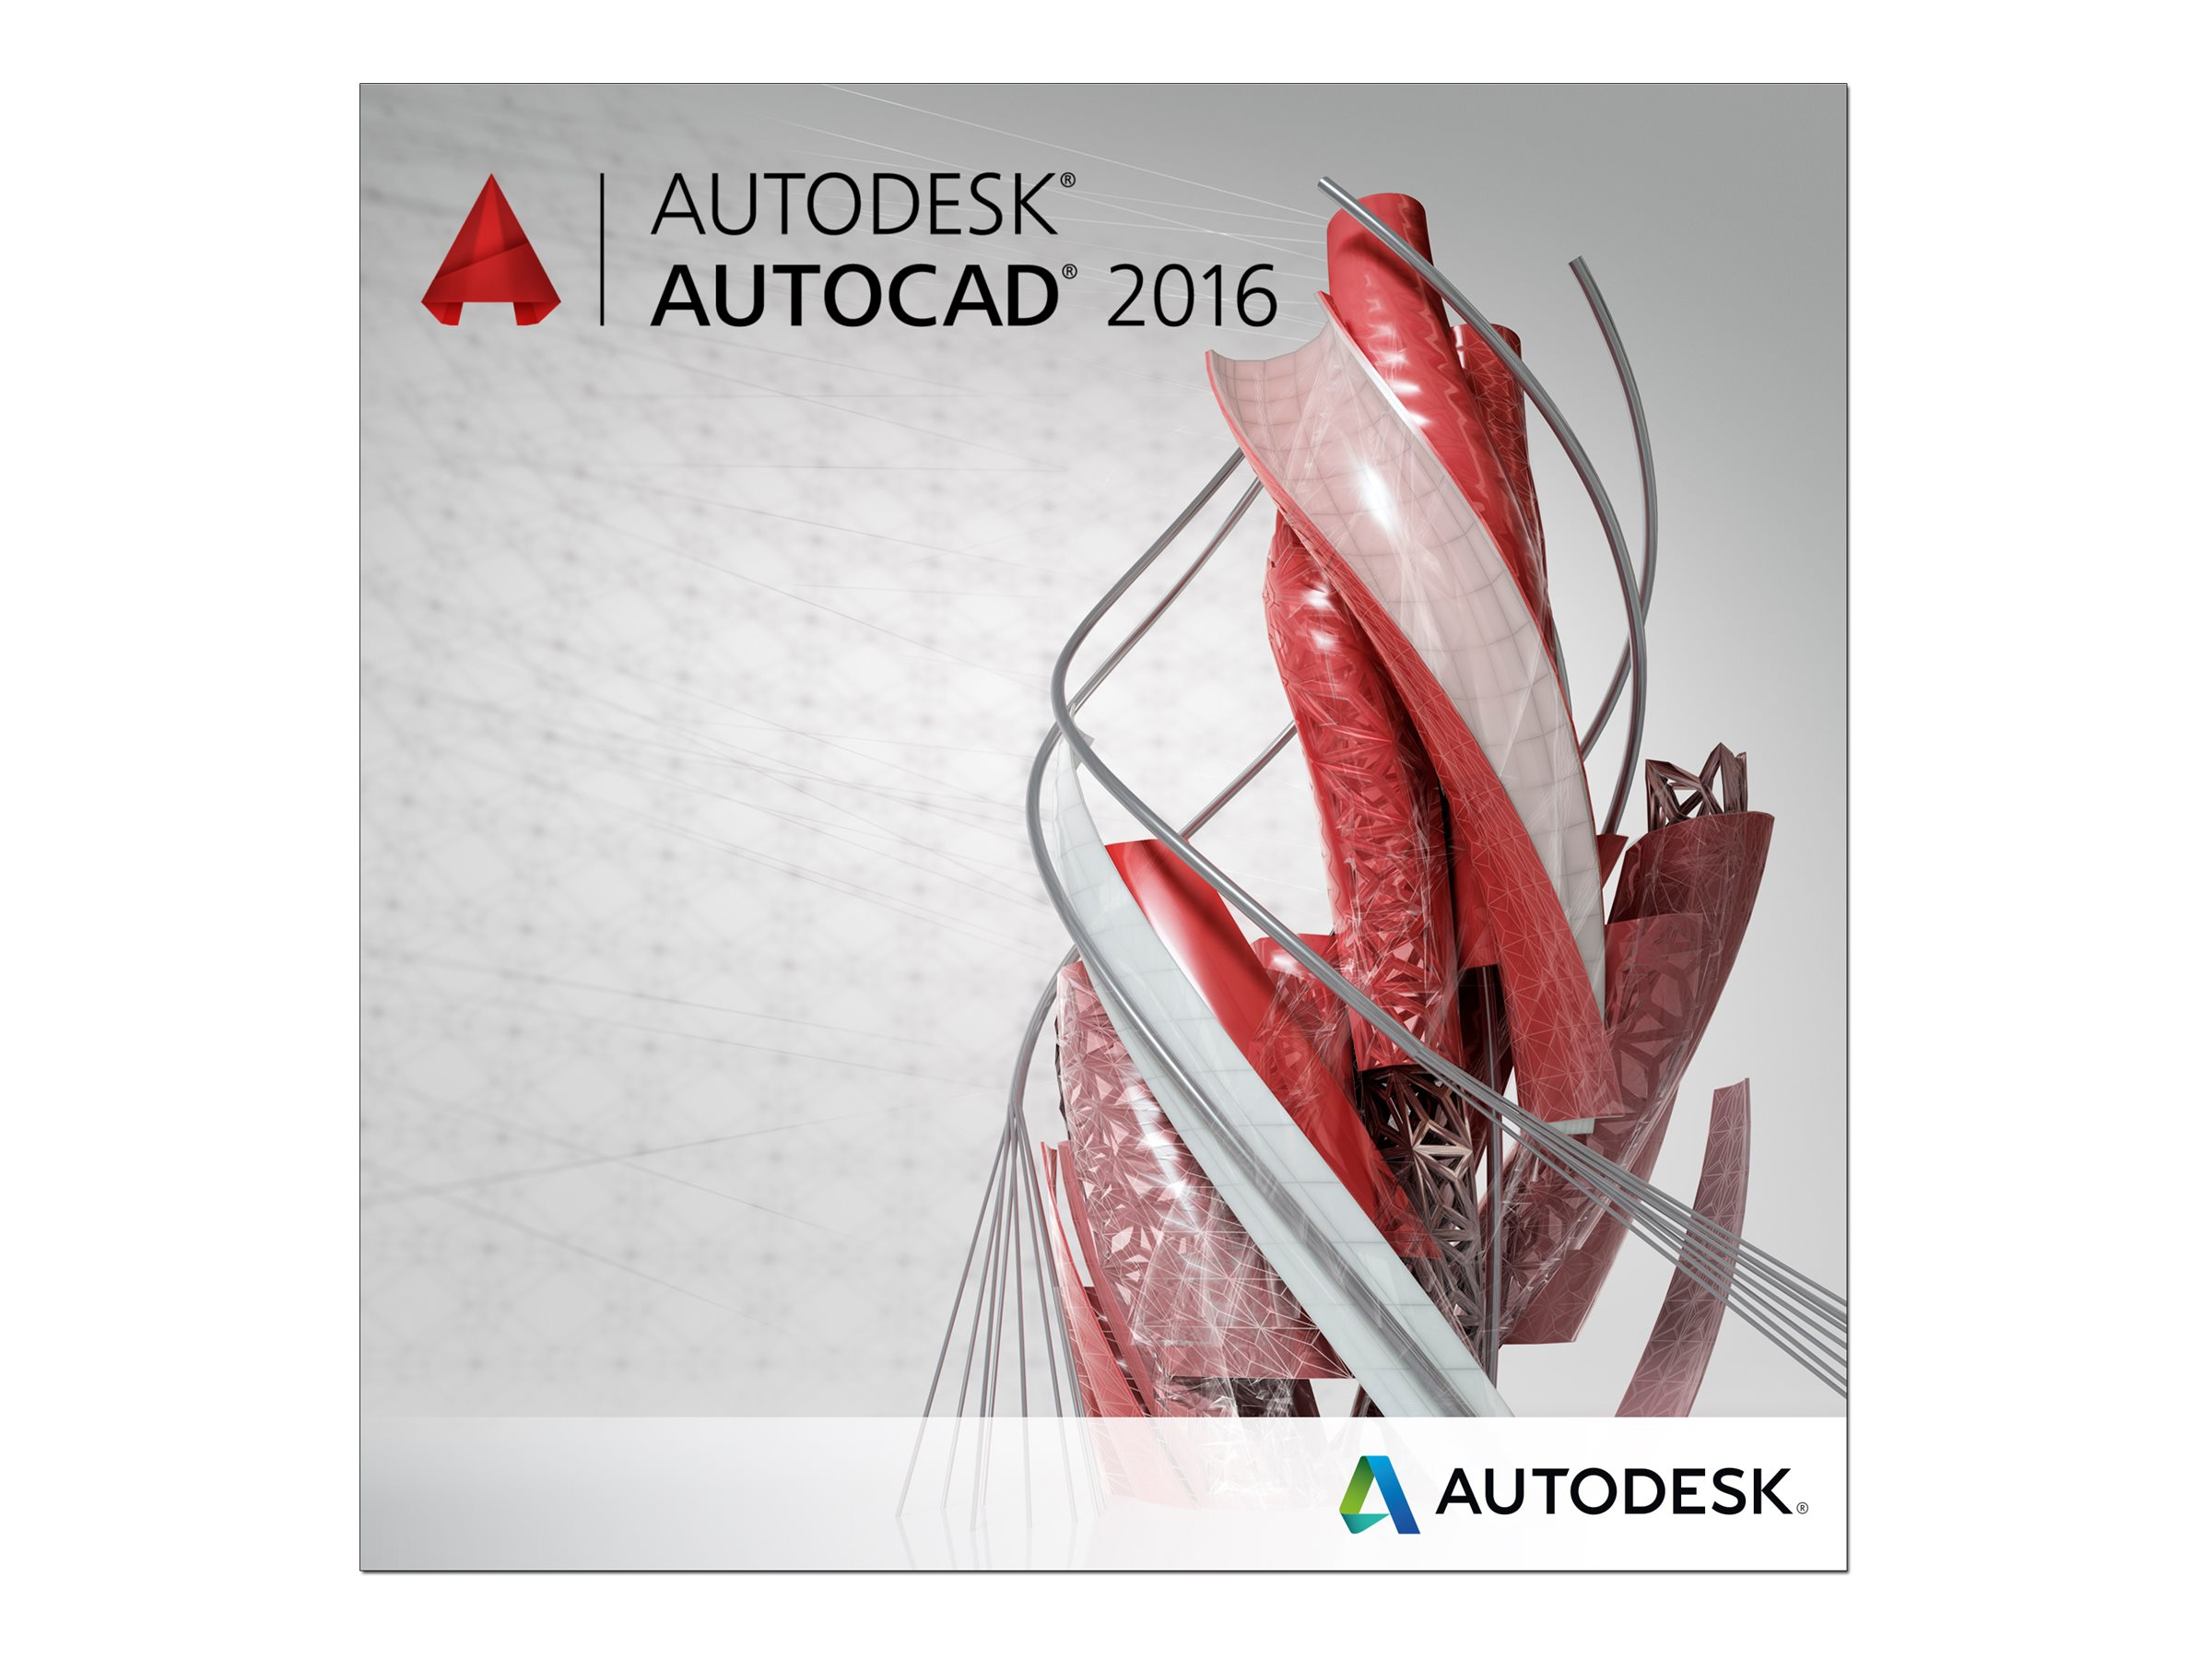 Autodesk Corp. AutoCAD 2016 Commercial New SLM ELD Annual Desktop Subscription with Basic Support, 001H1-WW6919-T229-VC, 19503783, Software - CAD